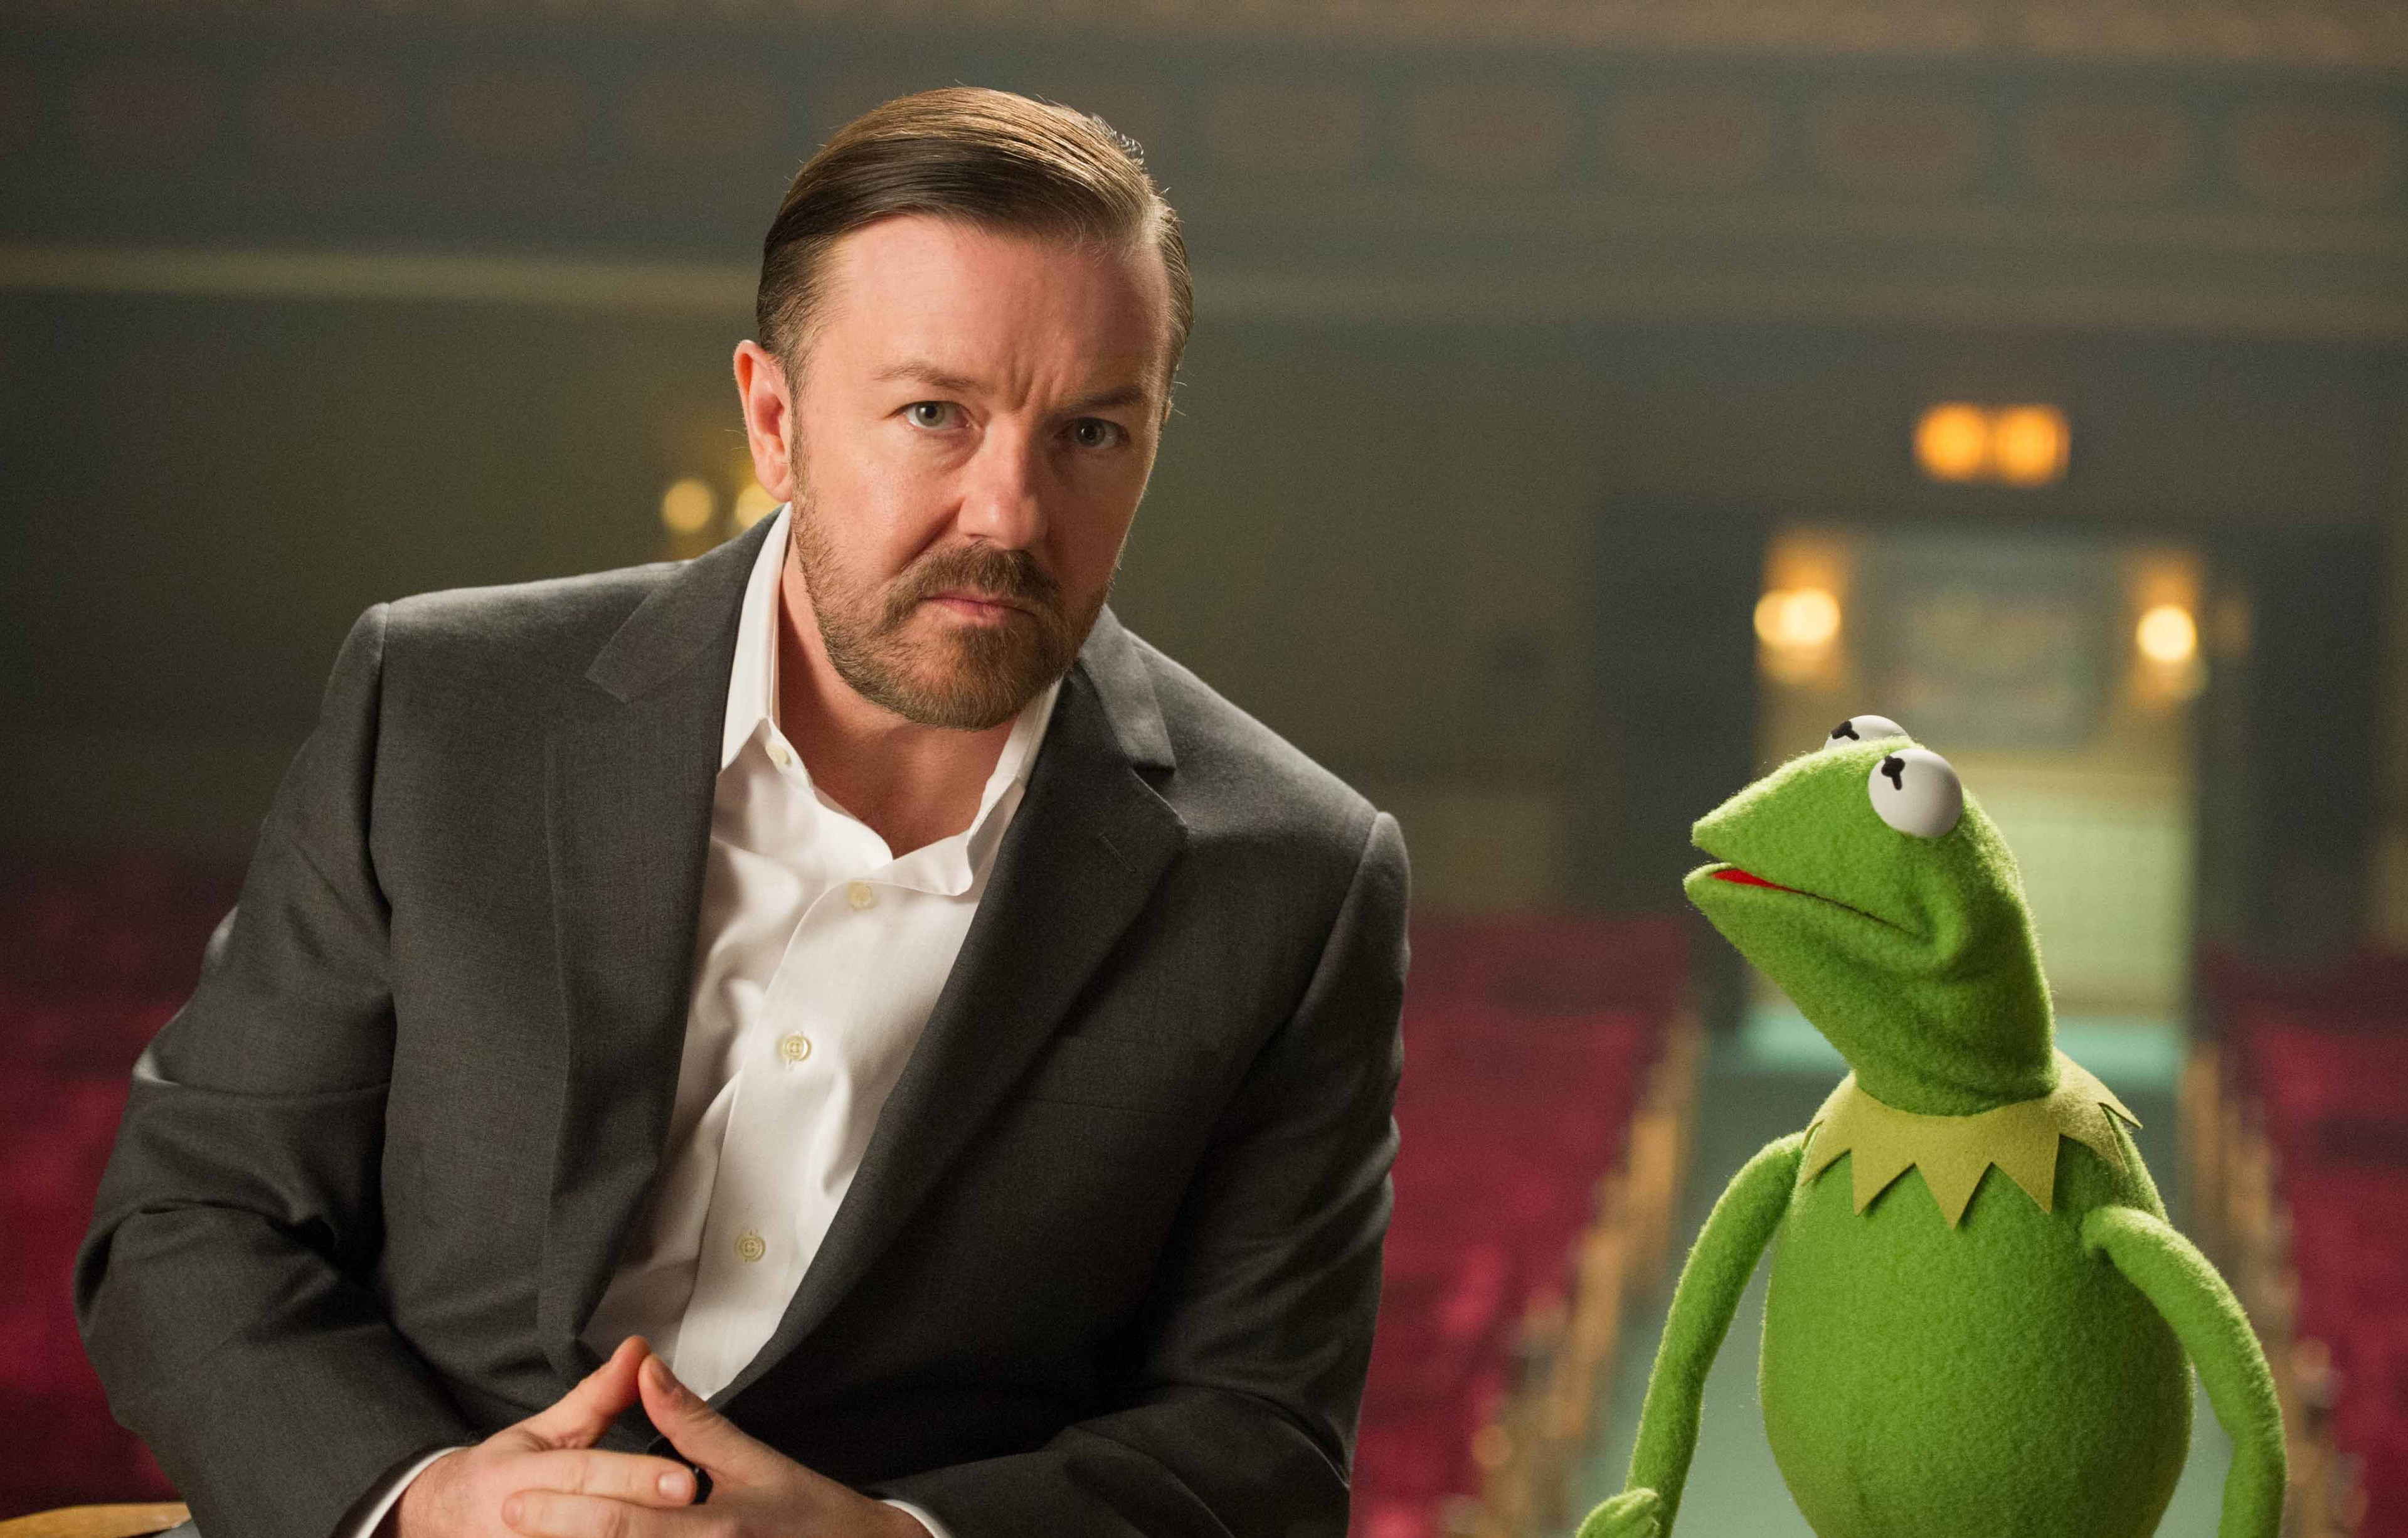 Kermit gets the inside scoop.